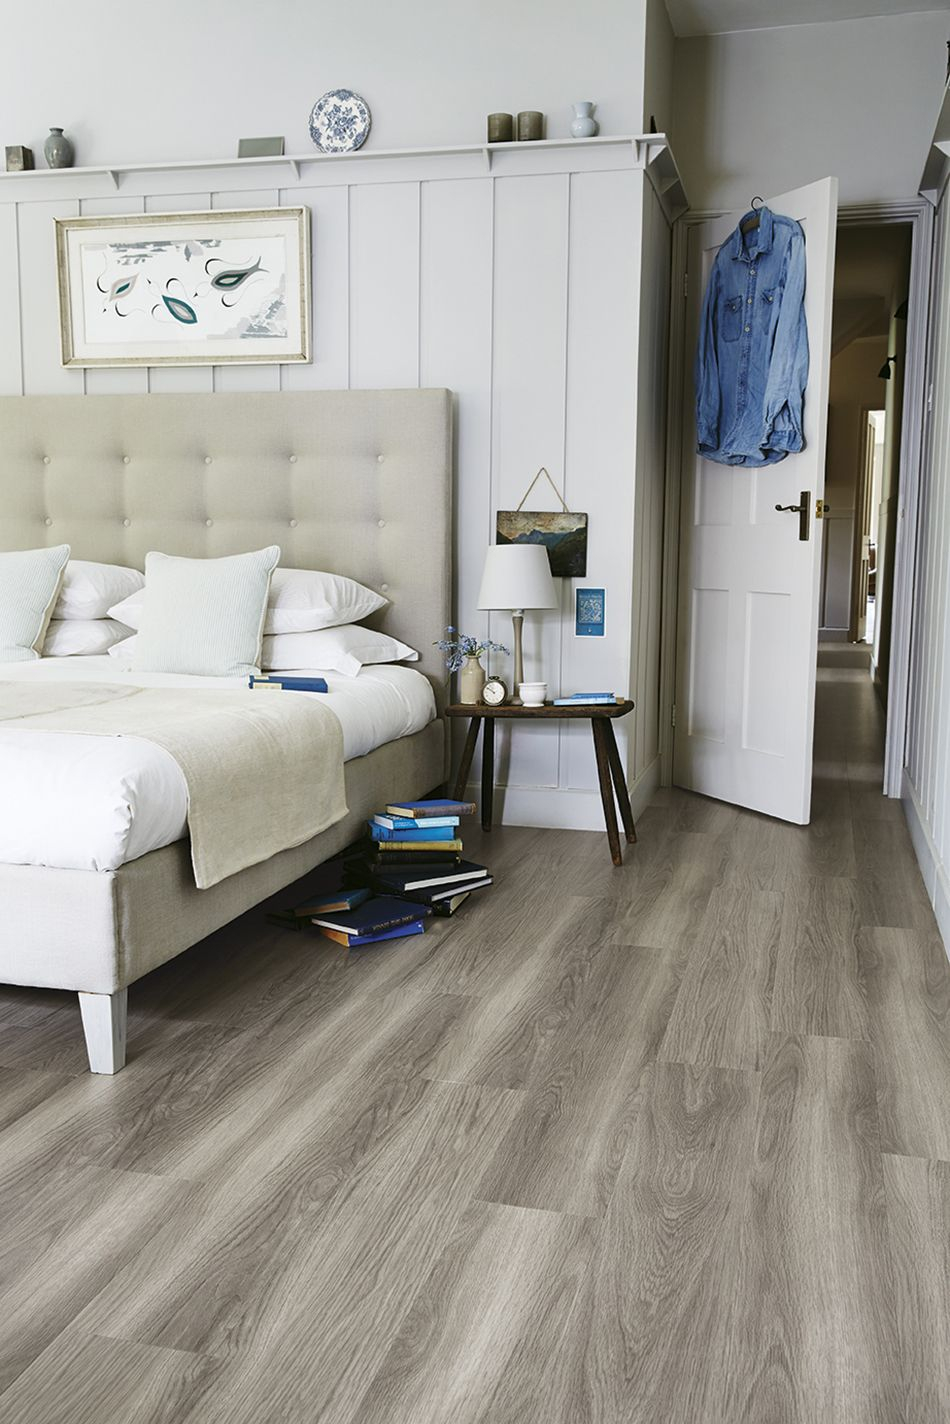 A Light And Bright Modern Bedroom With Lvt Wood Effect Flooring Get pertaining to Modern Bedroom Tiles